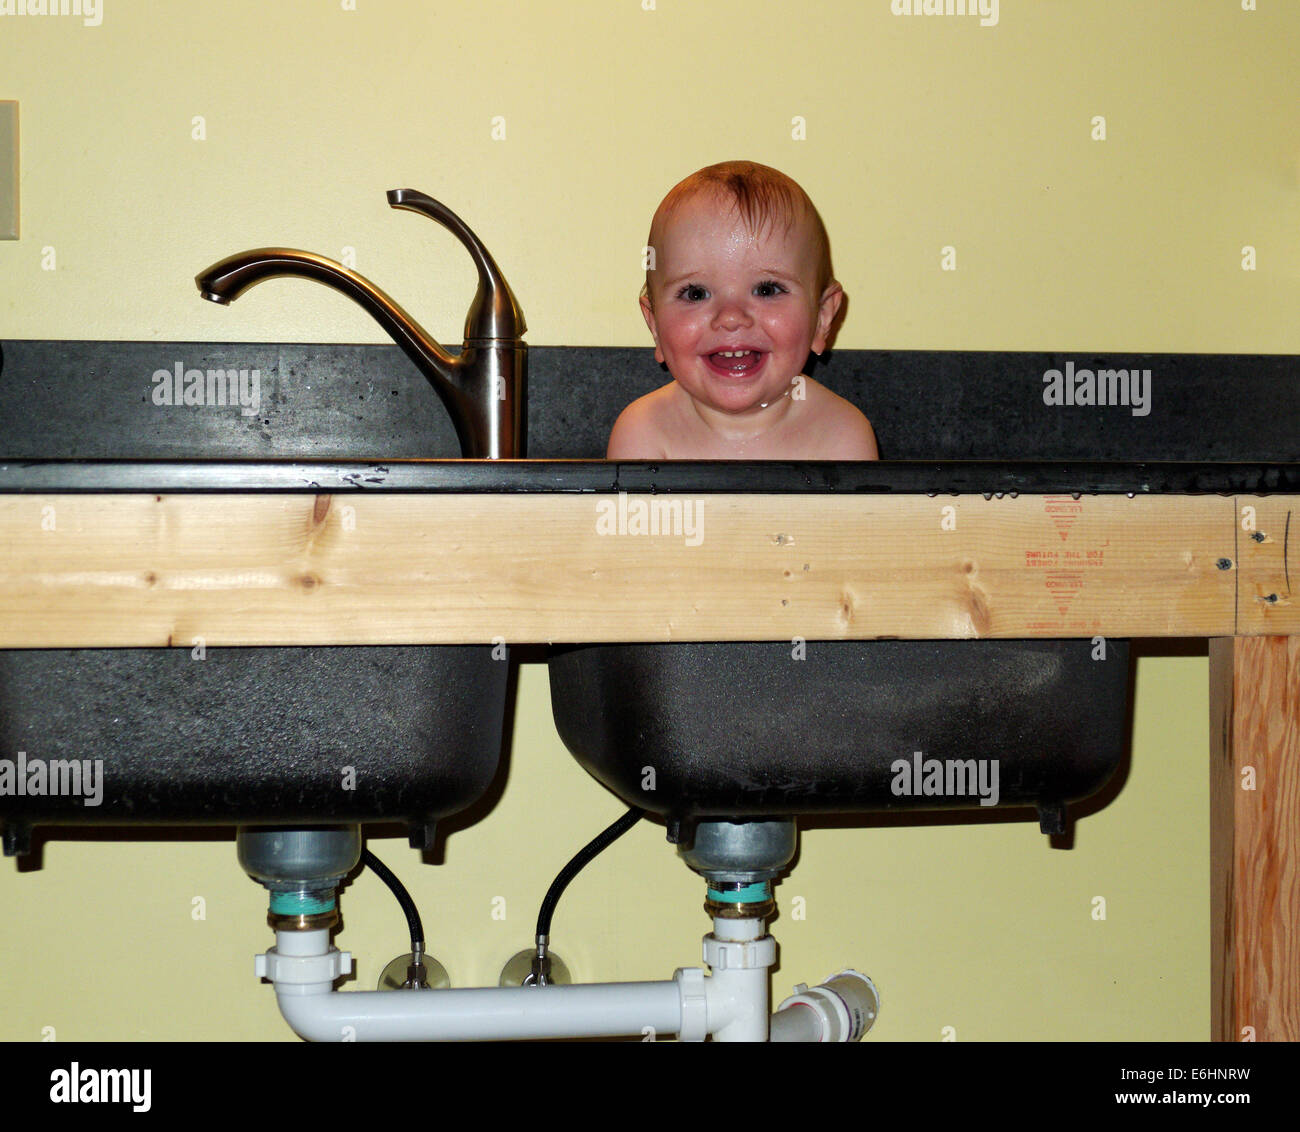 A smiling baby being washed in the sink - Stock Image